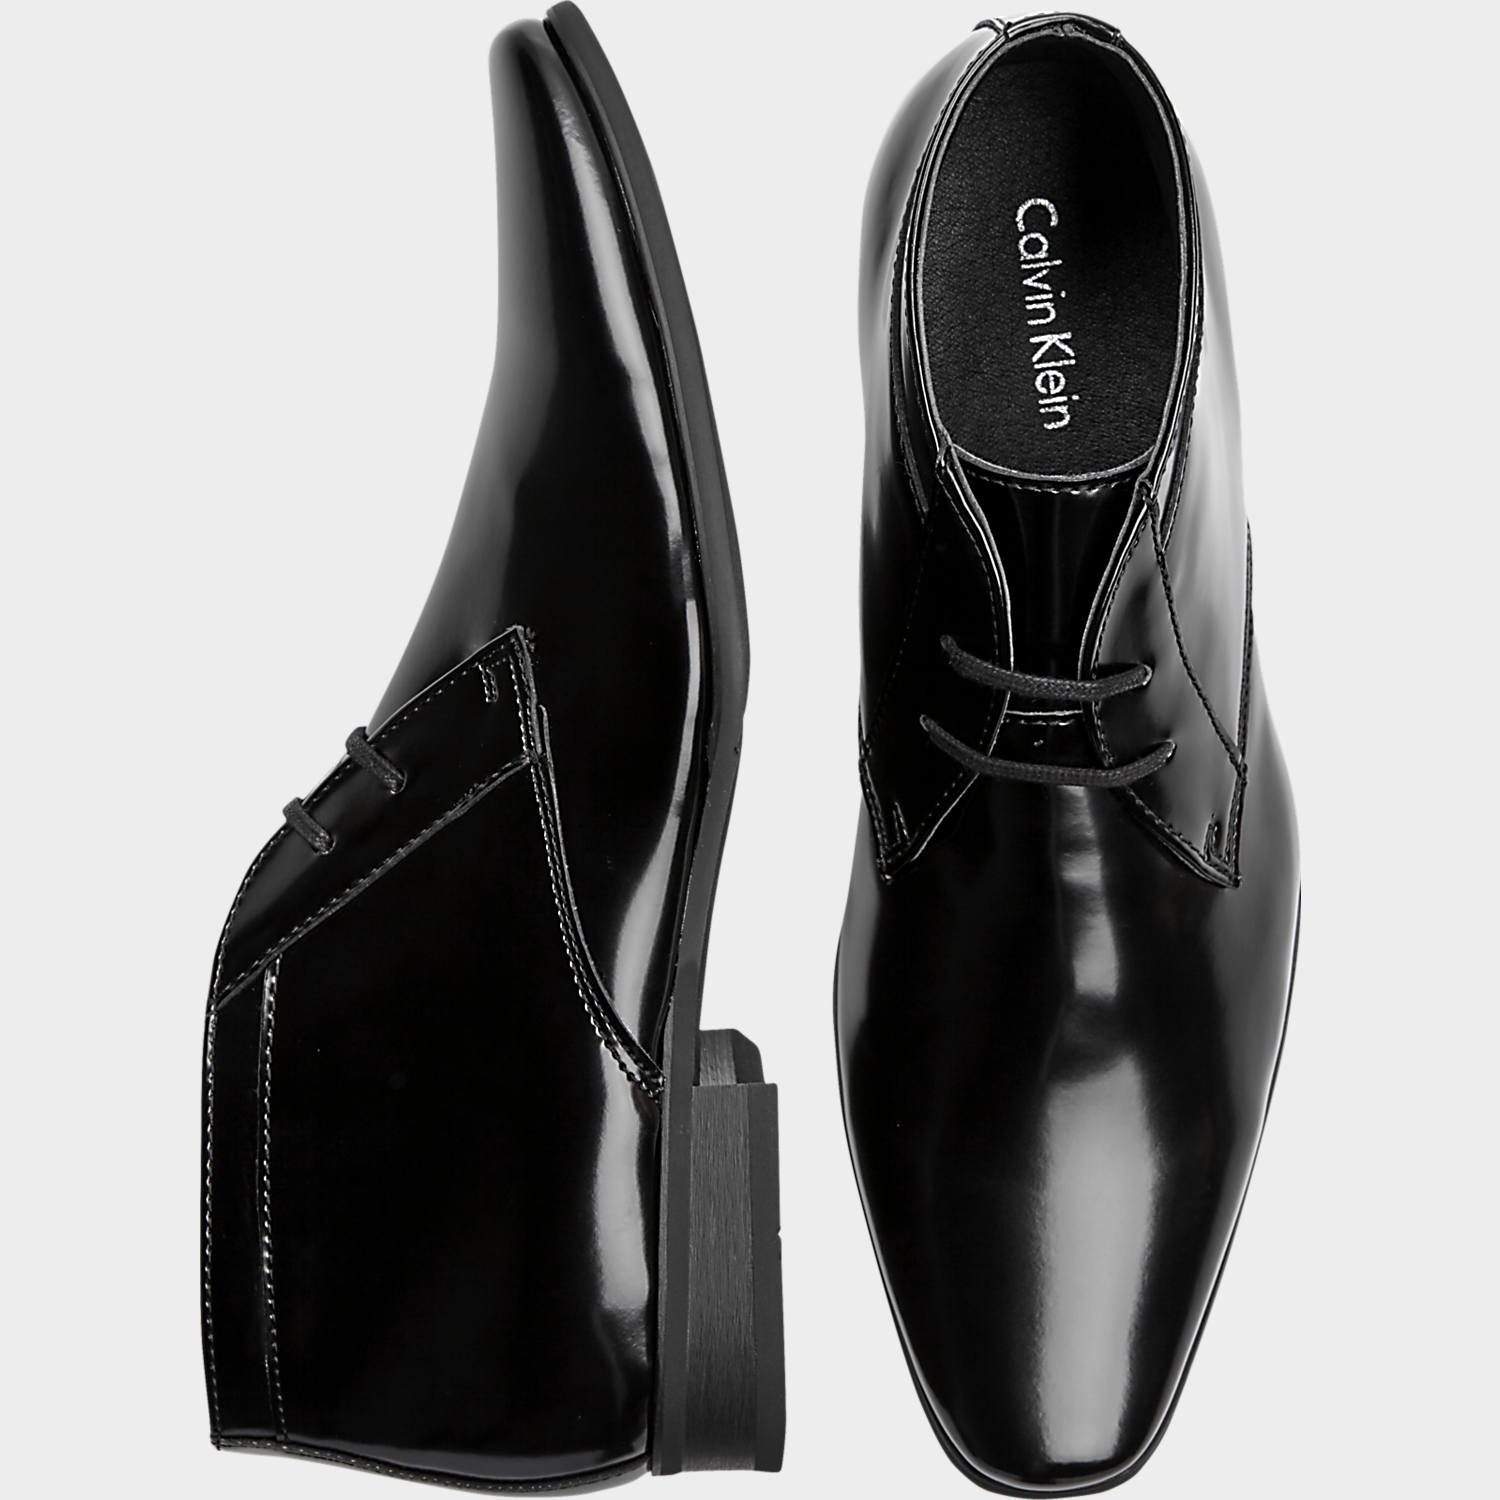 black shoes calvin klein ballard black tuxedo boot - menu0027s formal shoes | menu0027s  wearhouse qgfmoyt